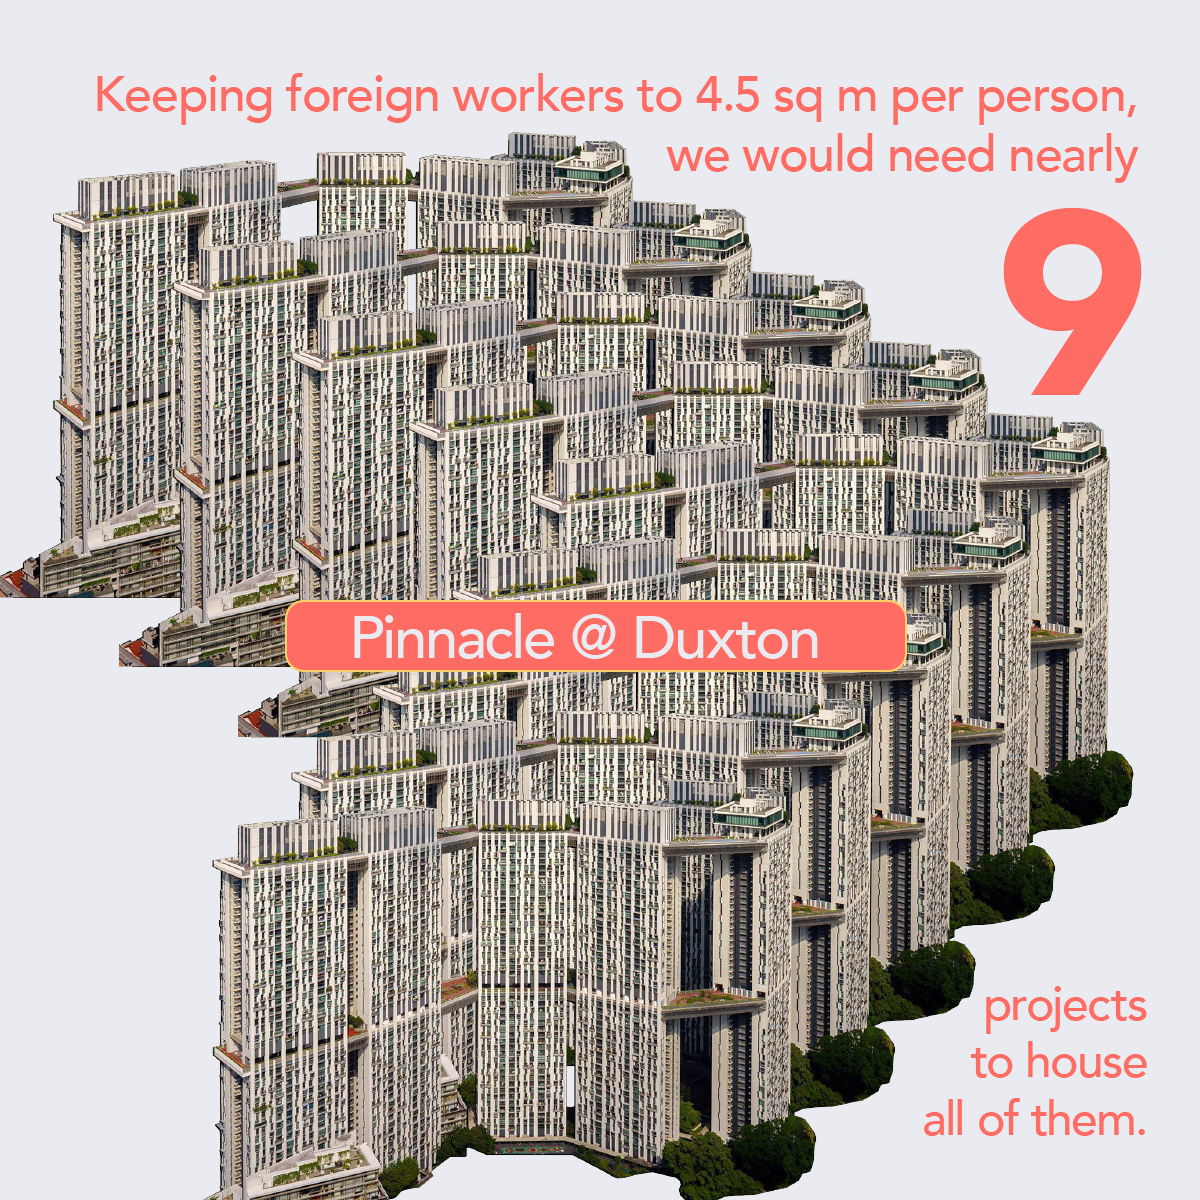 foreign workers dormitory pinnacle duxton infographic